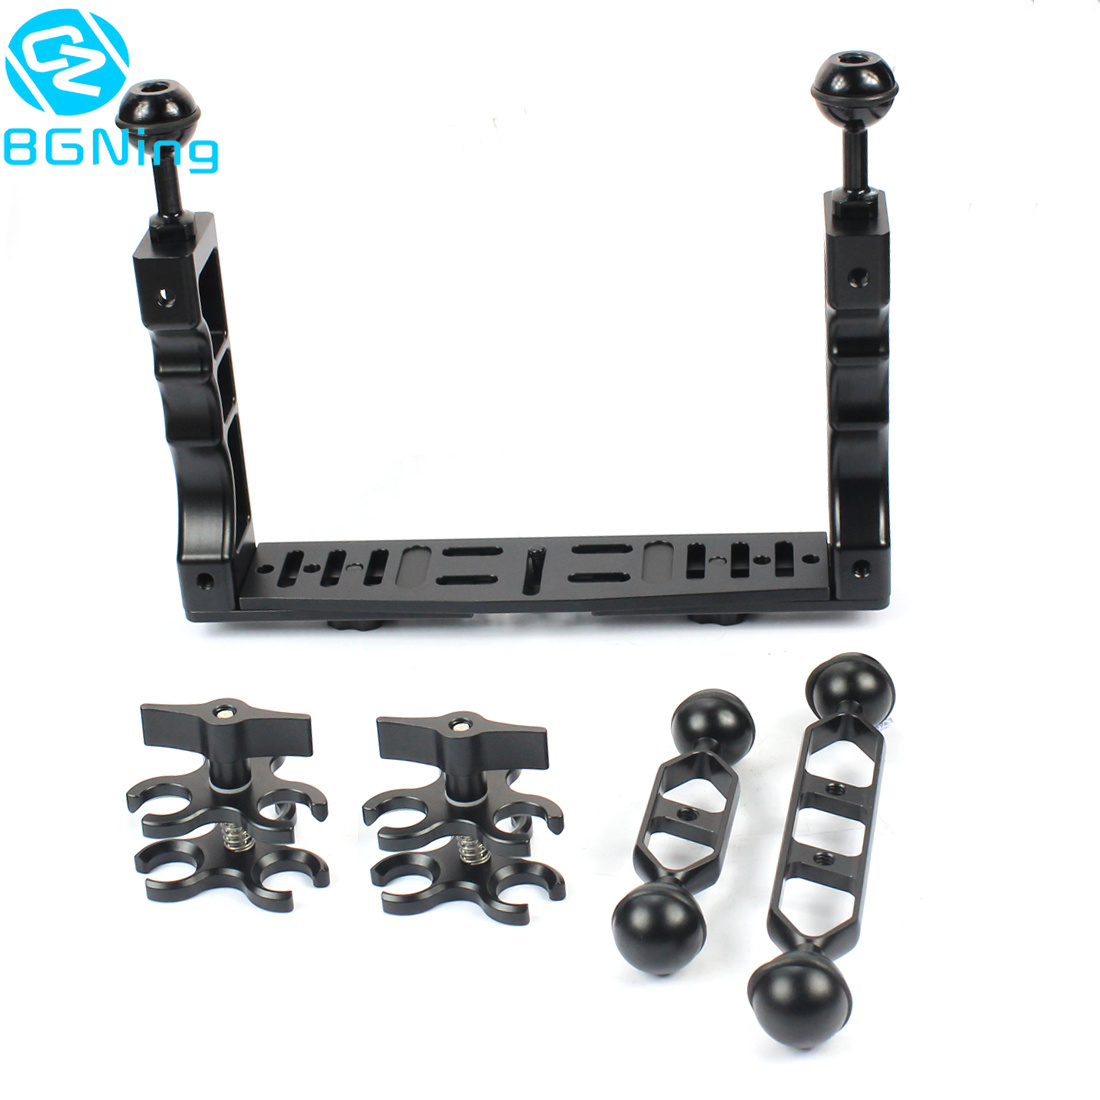 Underwater Tray Handheld Stabilizer Rig Grip Housing Diving Flash Light LED W Butterfly Clip Ball Head